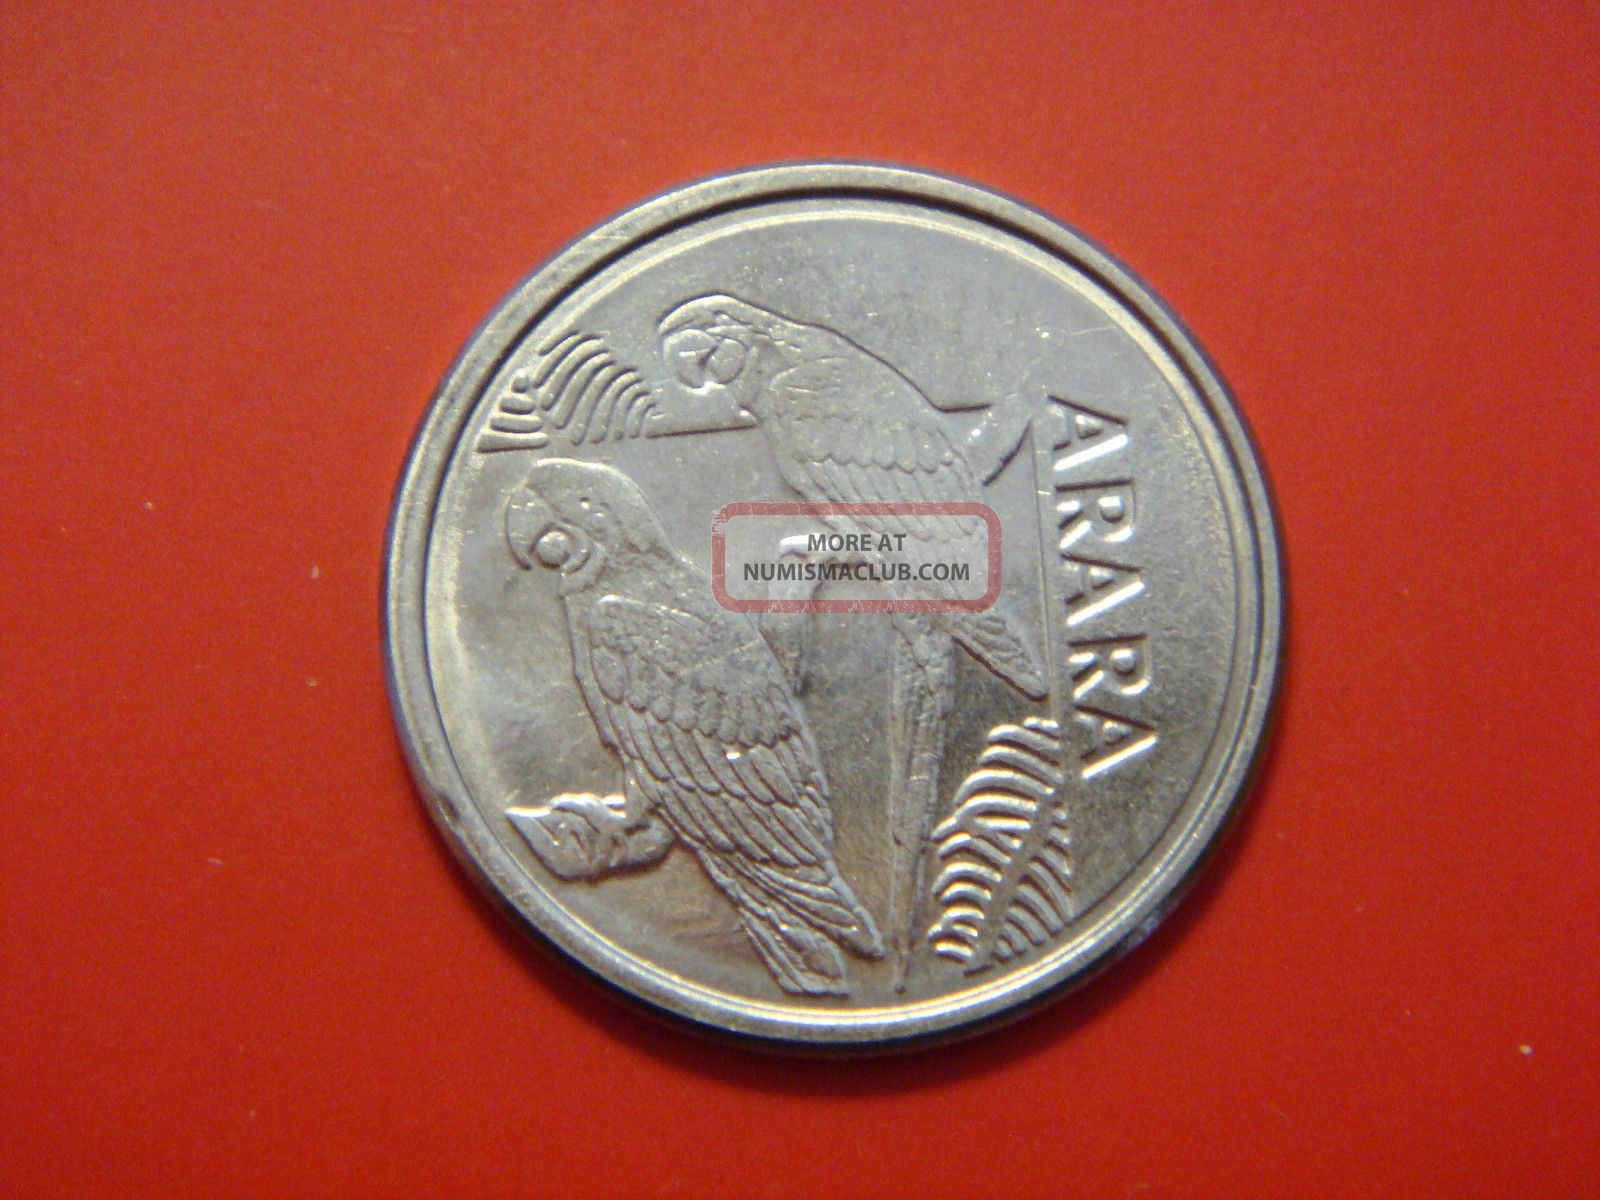 Brazil 5 Cruzeiros Reais,  1993,  Macaw Parrots,  Bird Coin South America photo